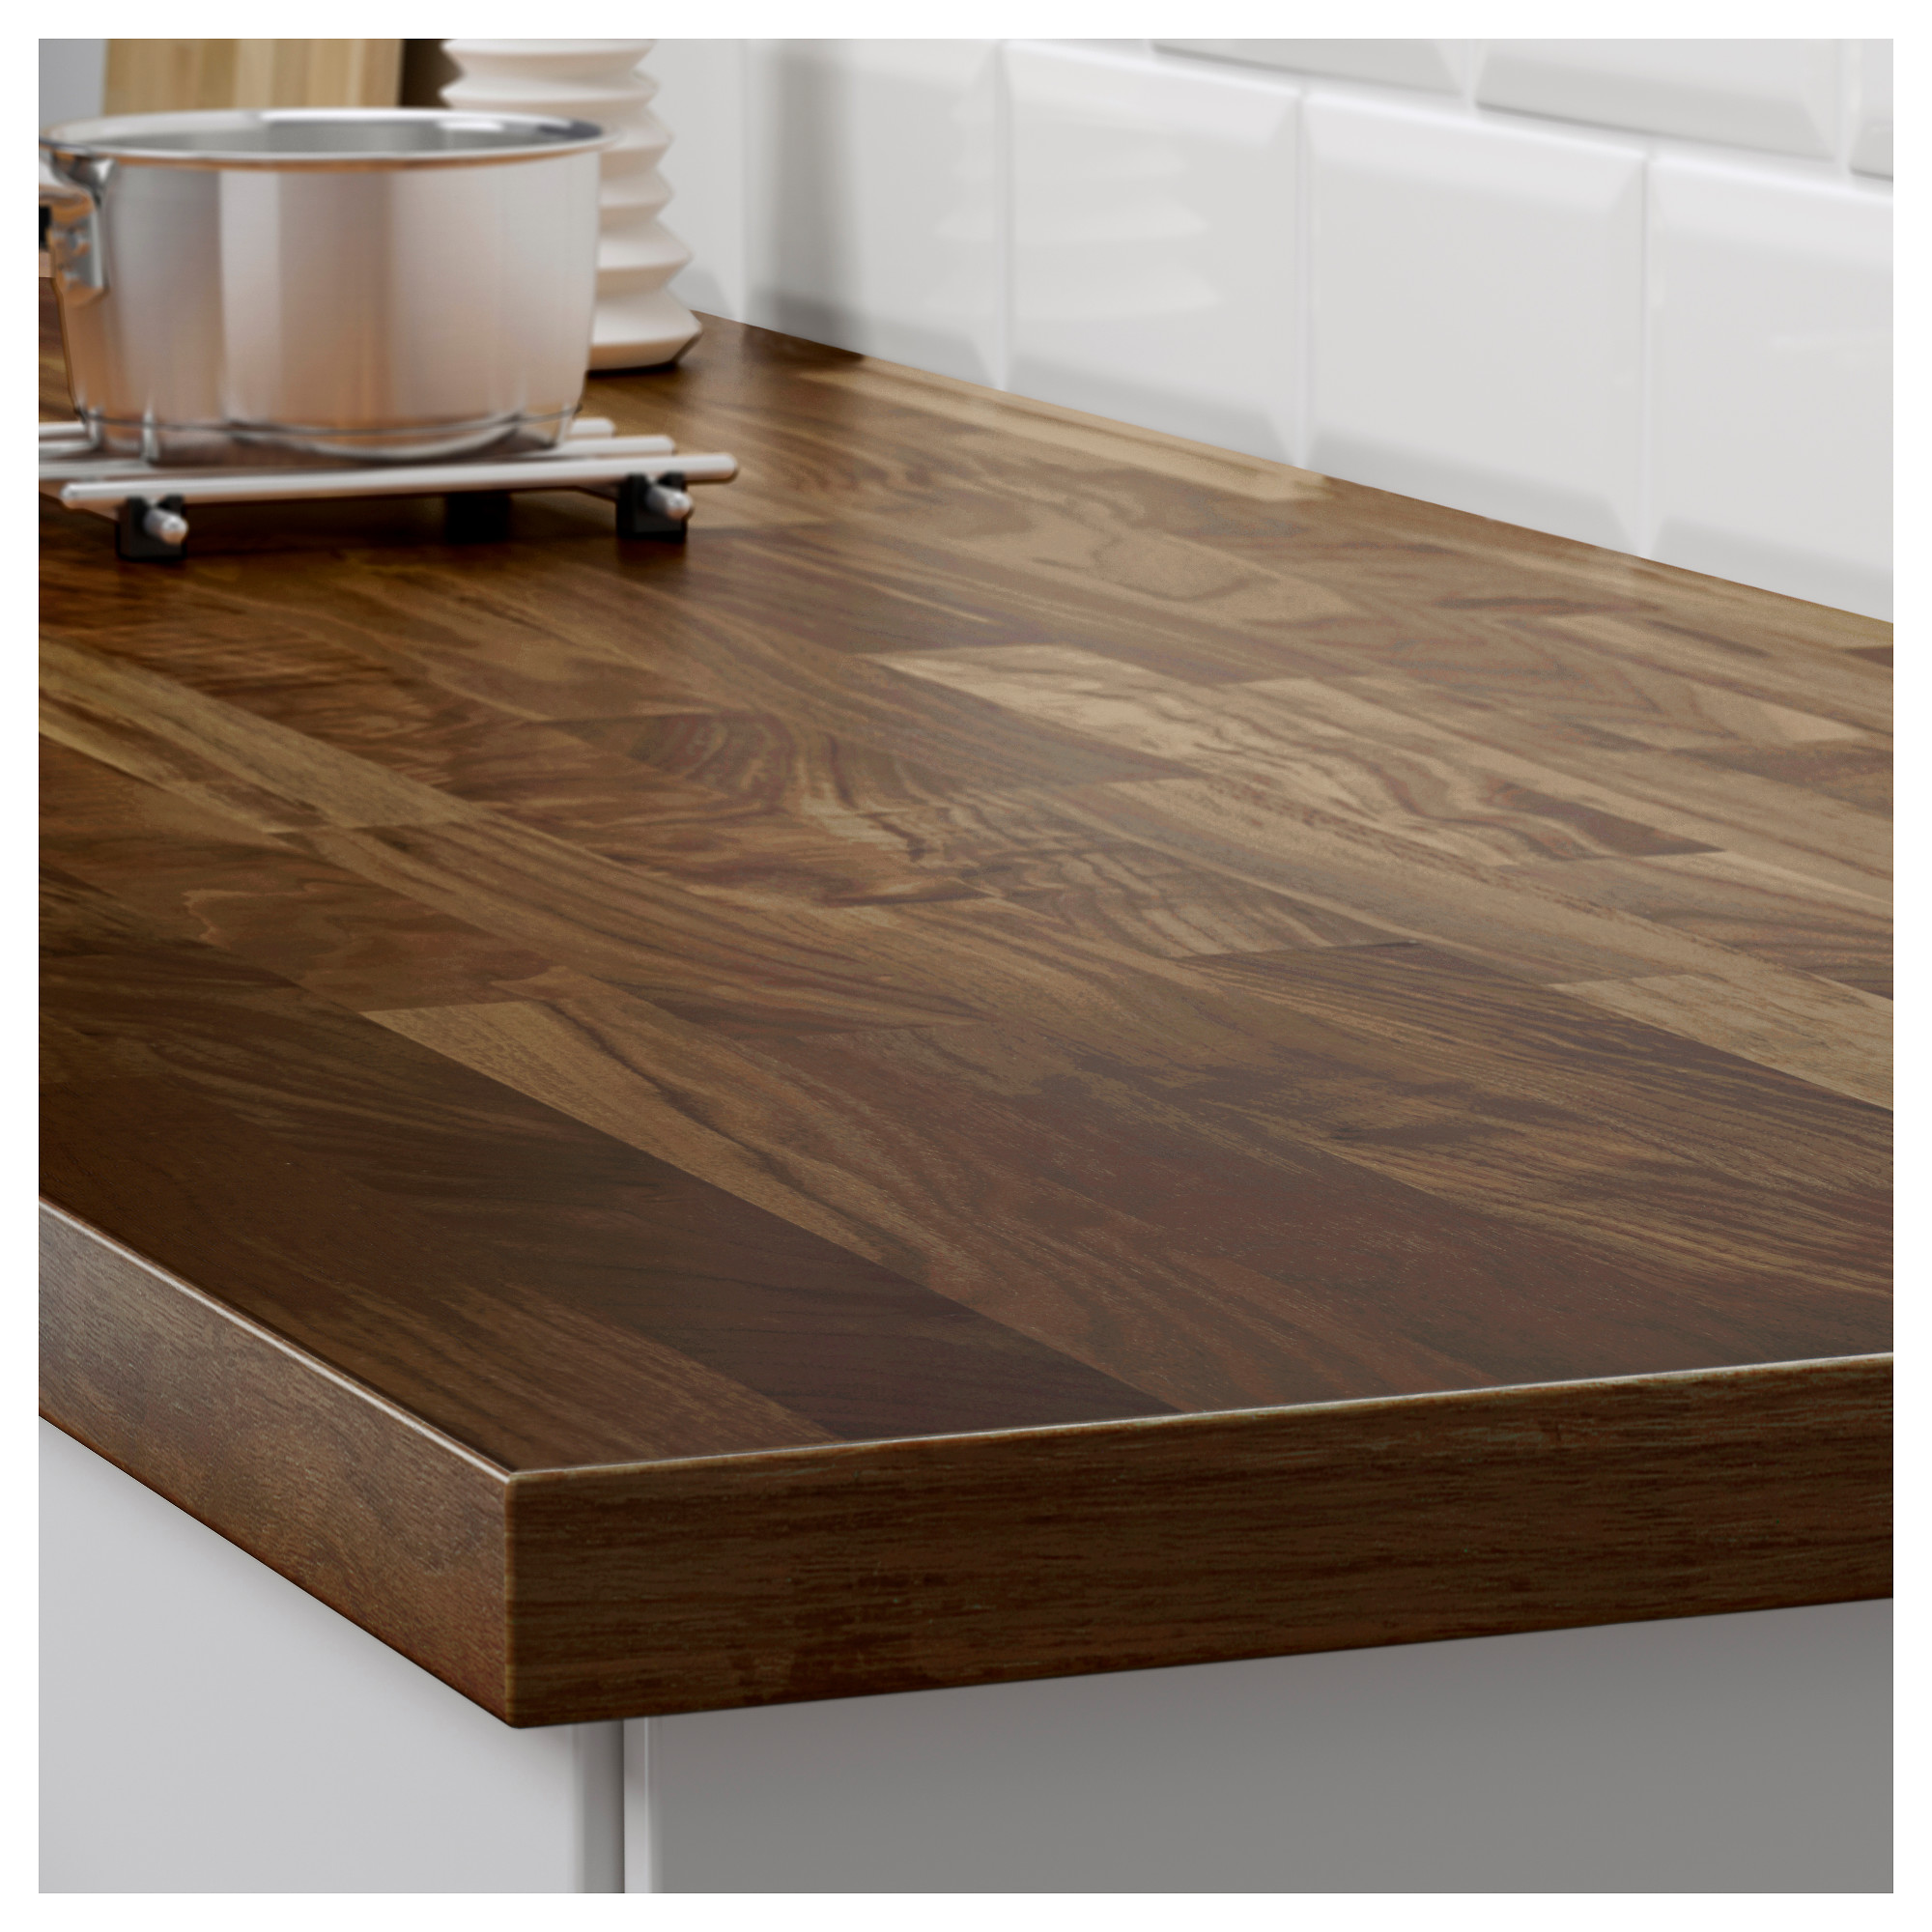 Ikea Wood Countertop Review Karlby Countertop For Kitchen Island Walnut Ikea